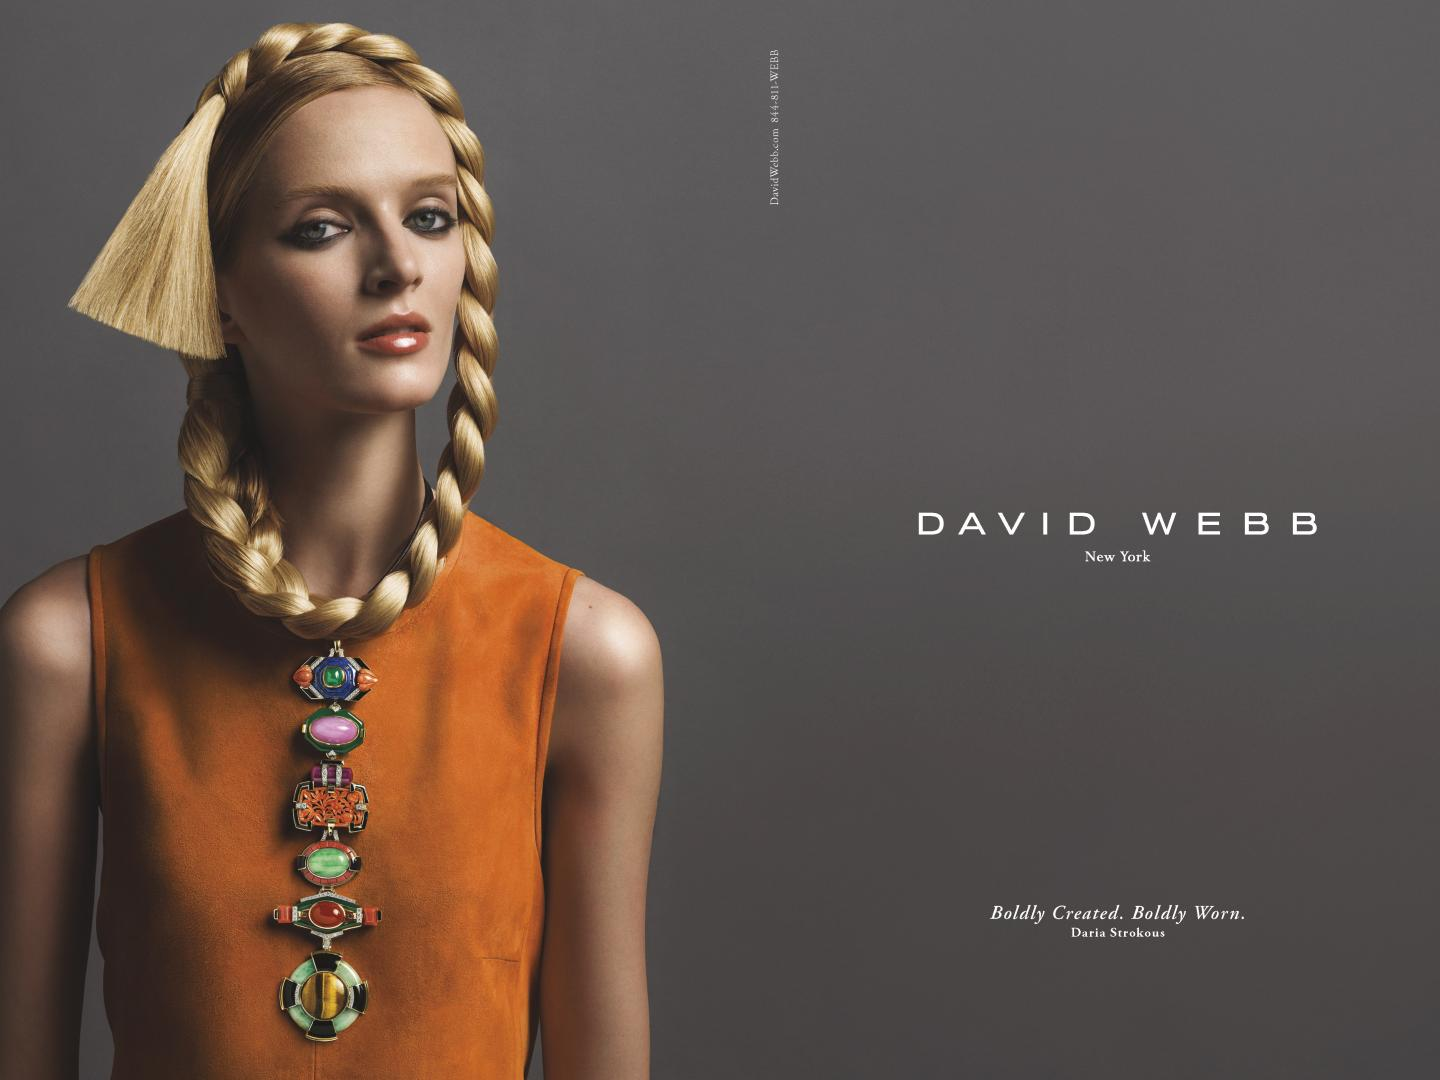 Image for David Webb